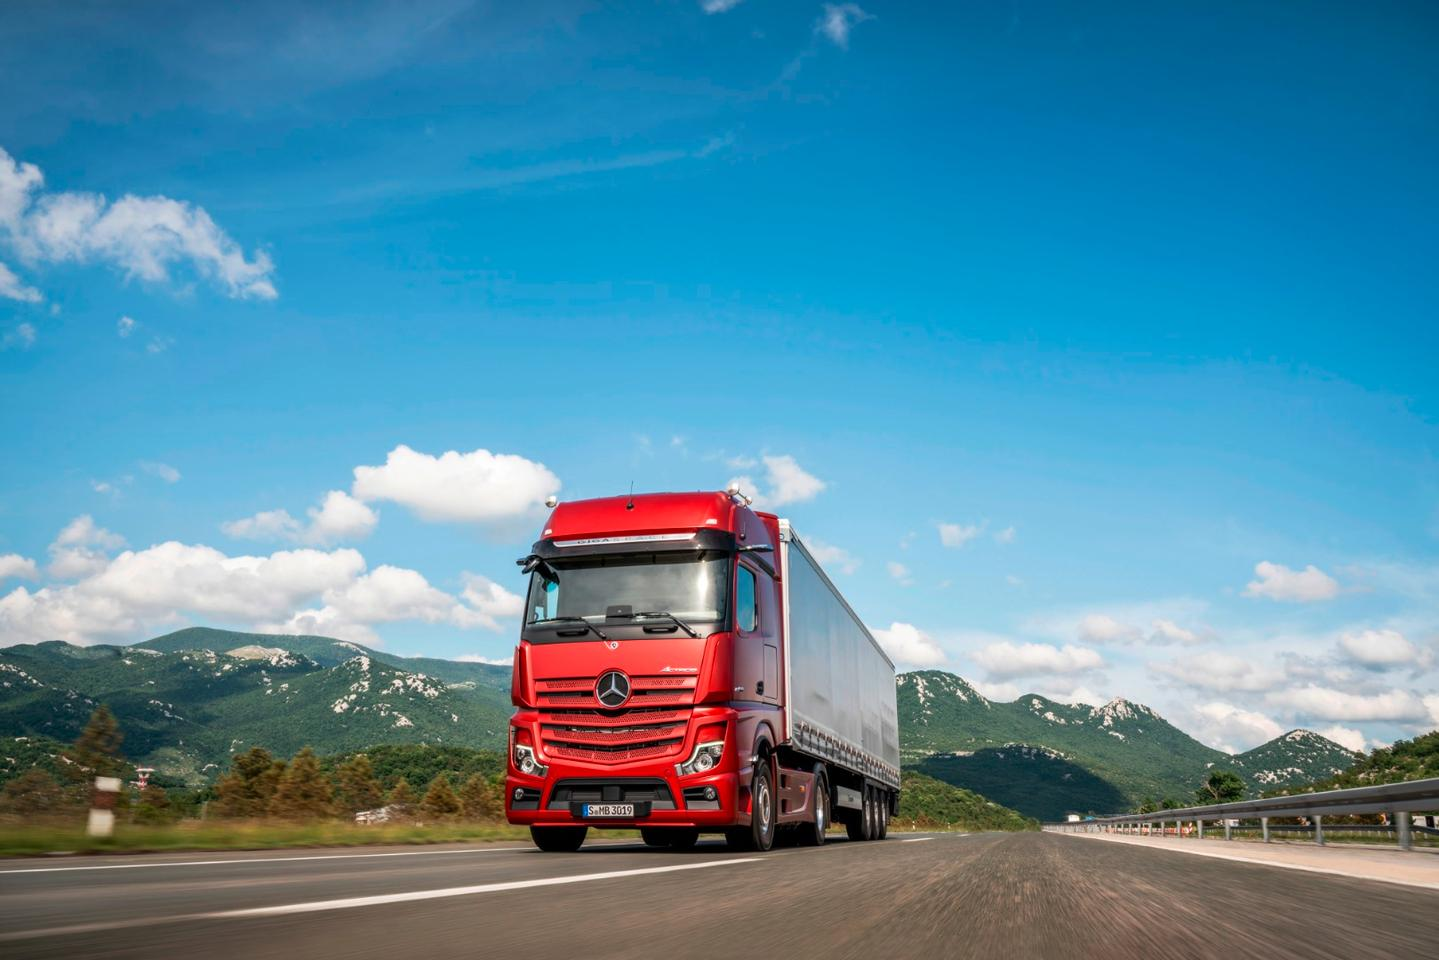 The Actros is very popular in European markets and this new version of the truck adds efficiency, technology, and new semi-automated driving and driver-assist systems to improve safety as well